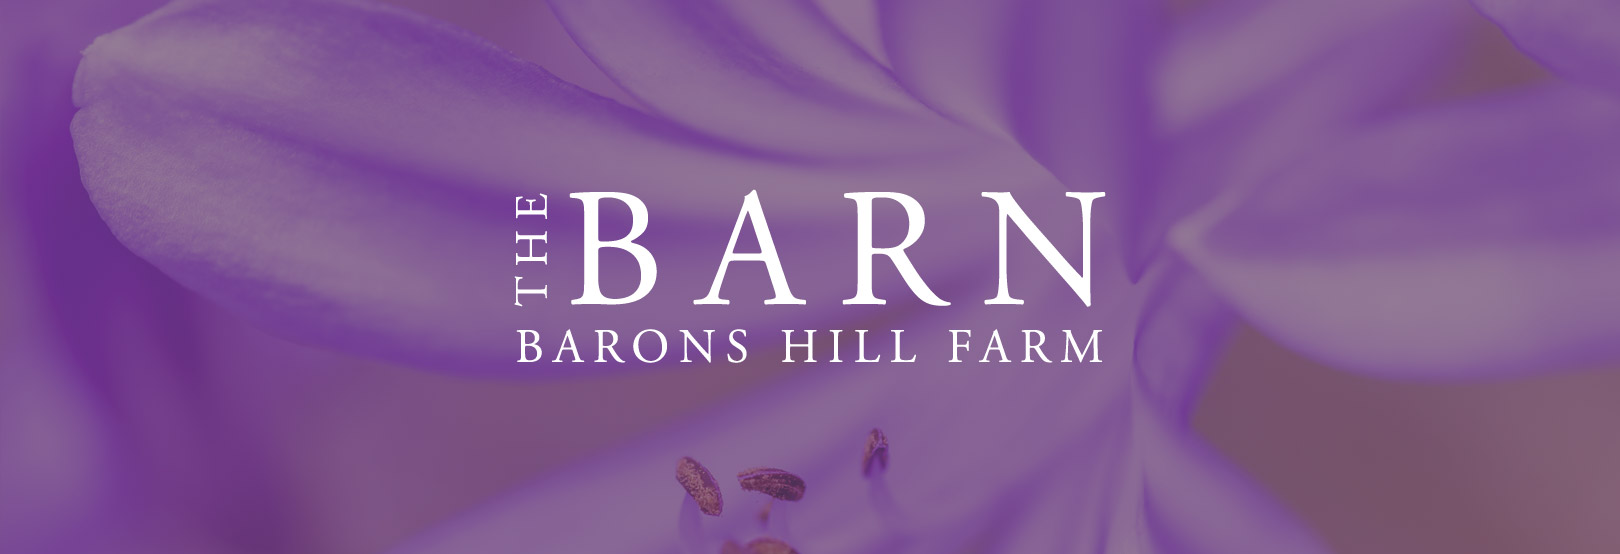 barn-barons-hill